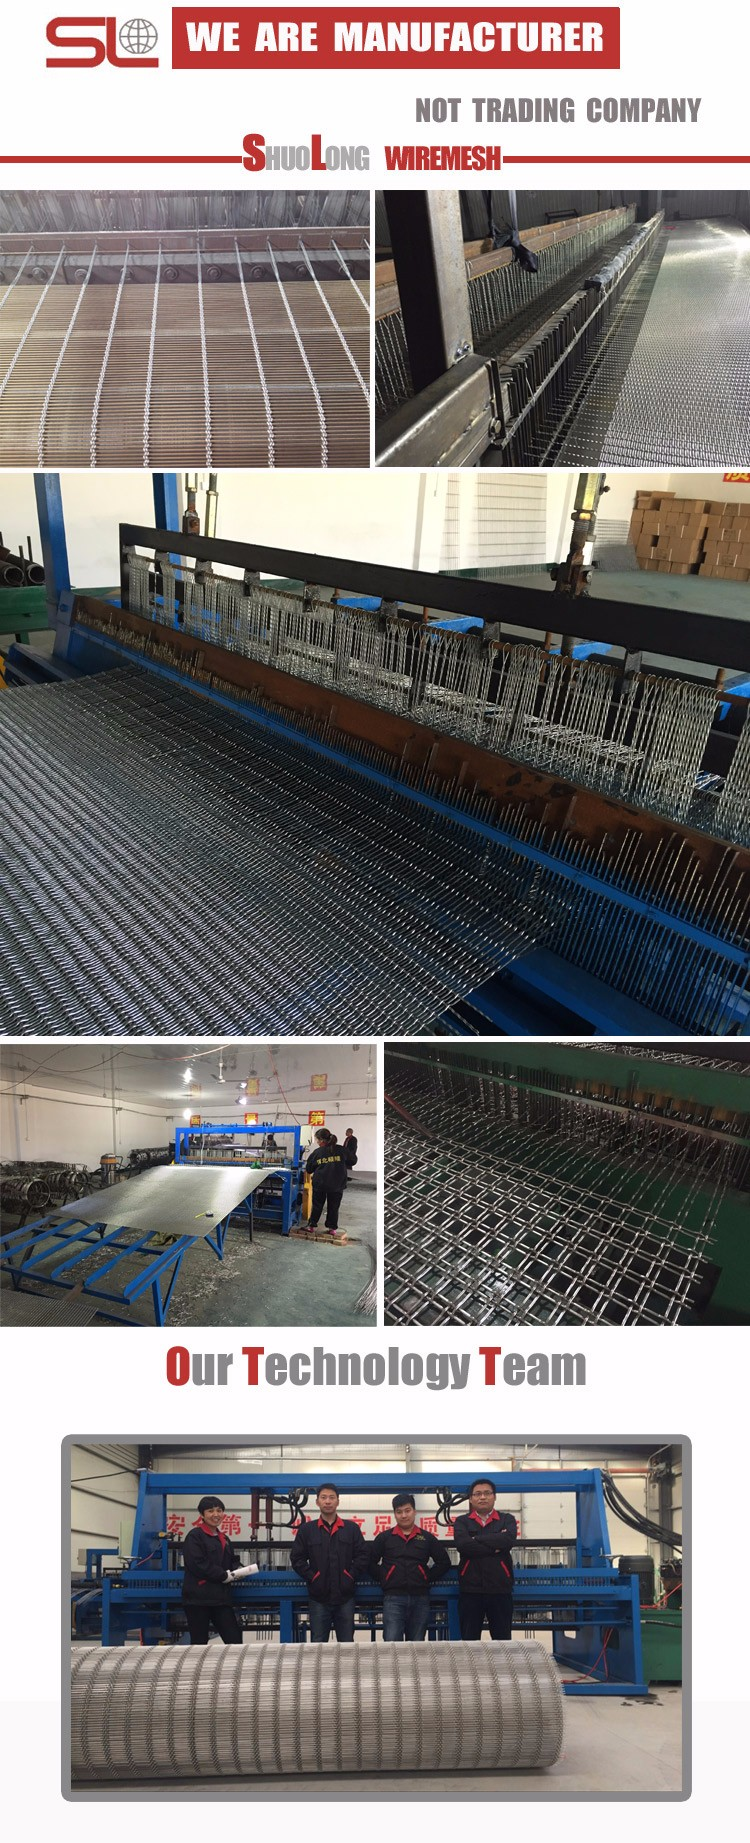 Architectural Stainless Steel Egla Twin Mesh for Balustrades